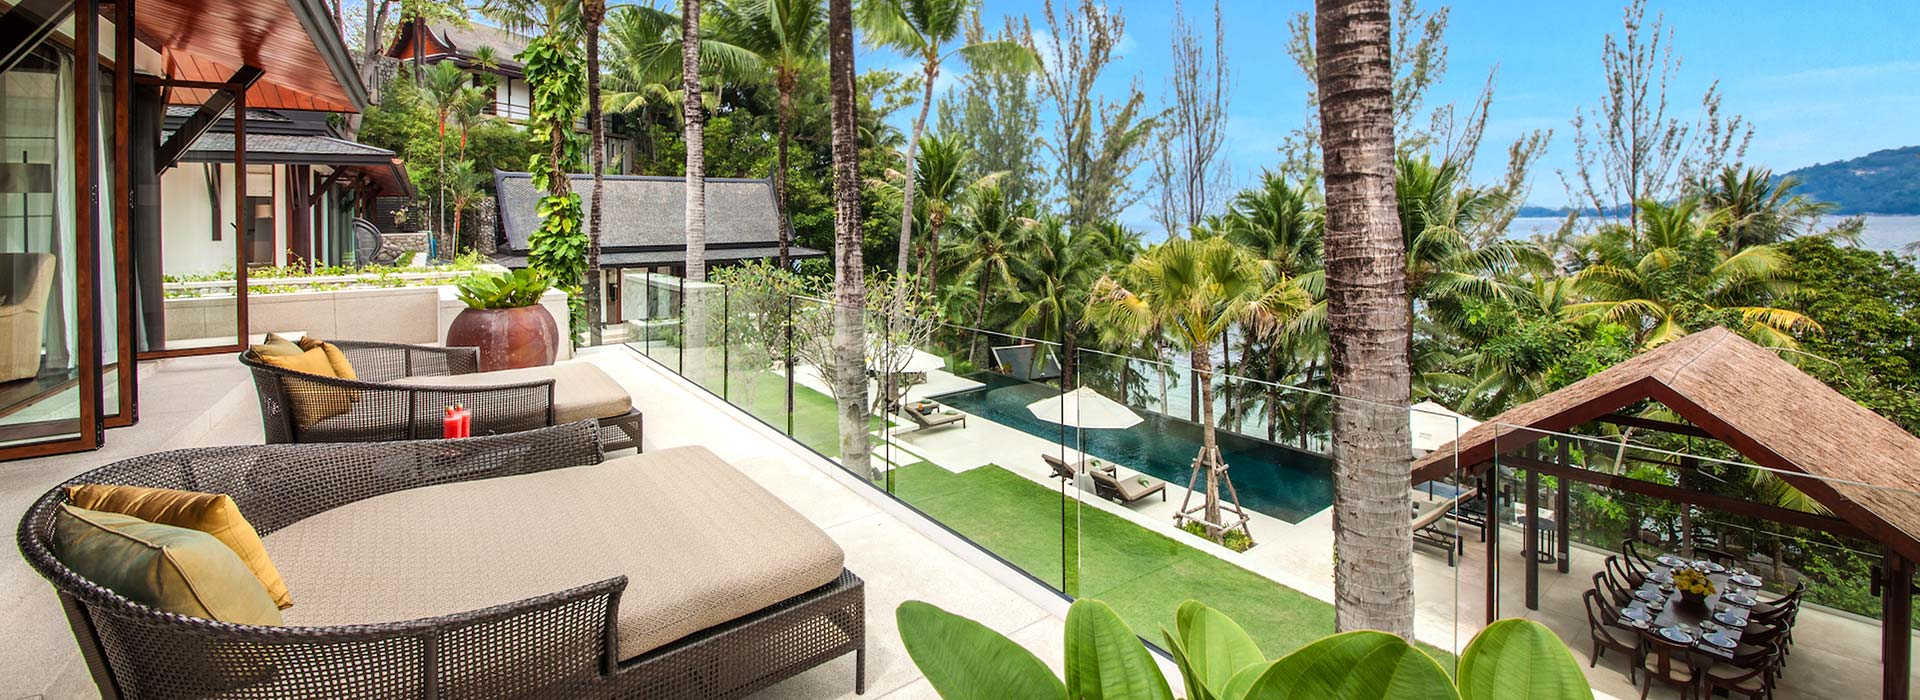 Villa Analaya 6 Bedrooms<br>with private pool